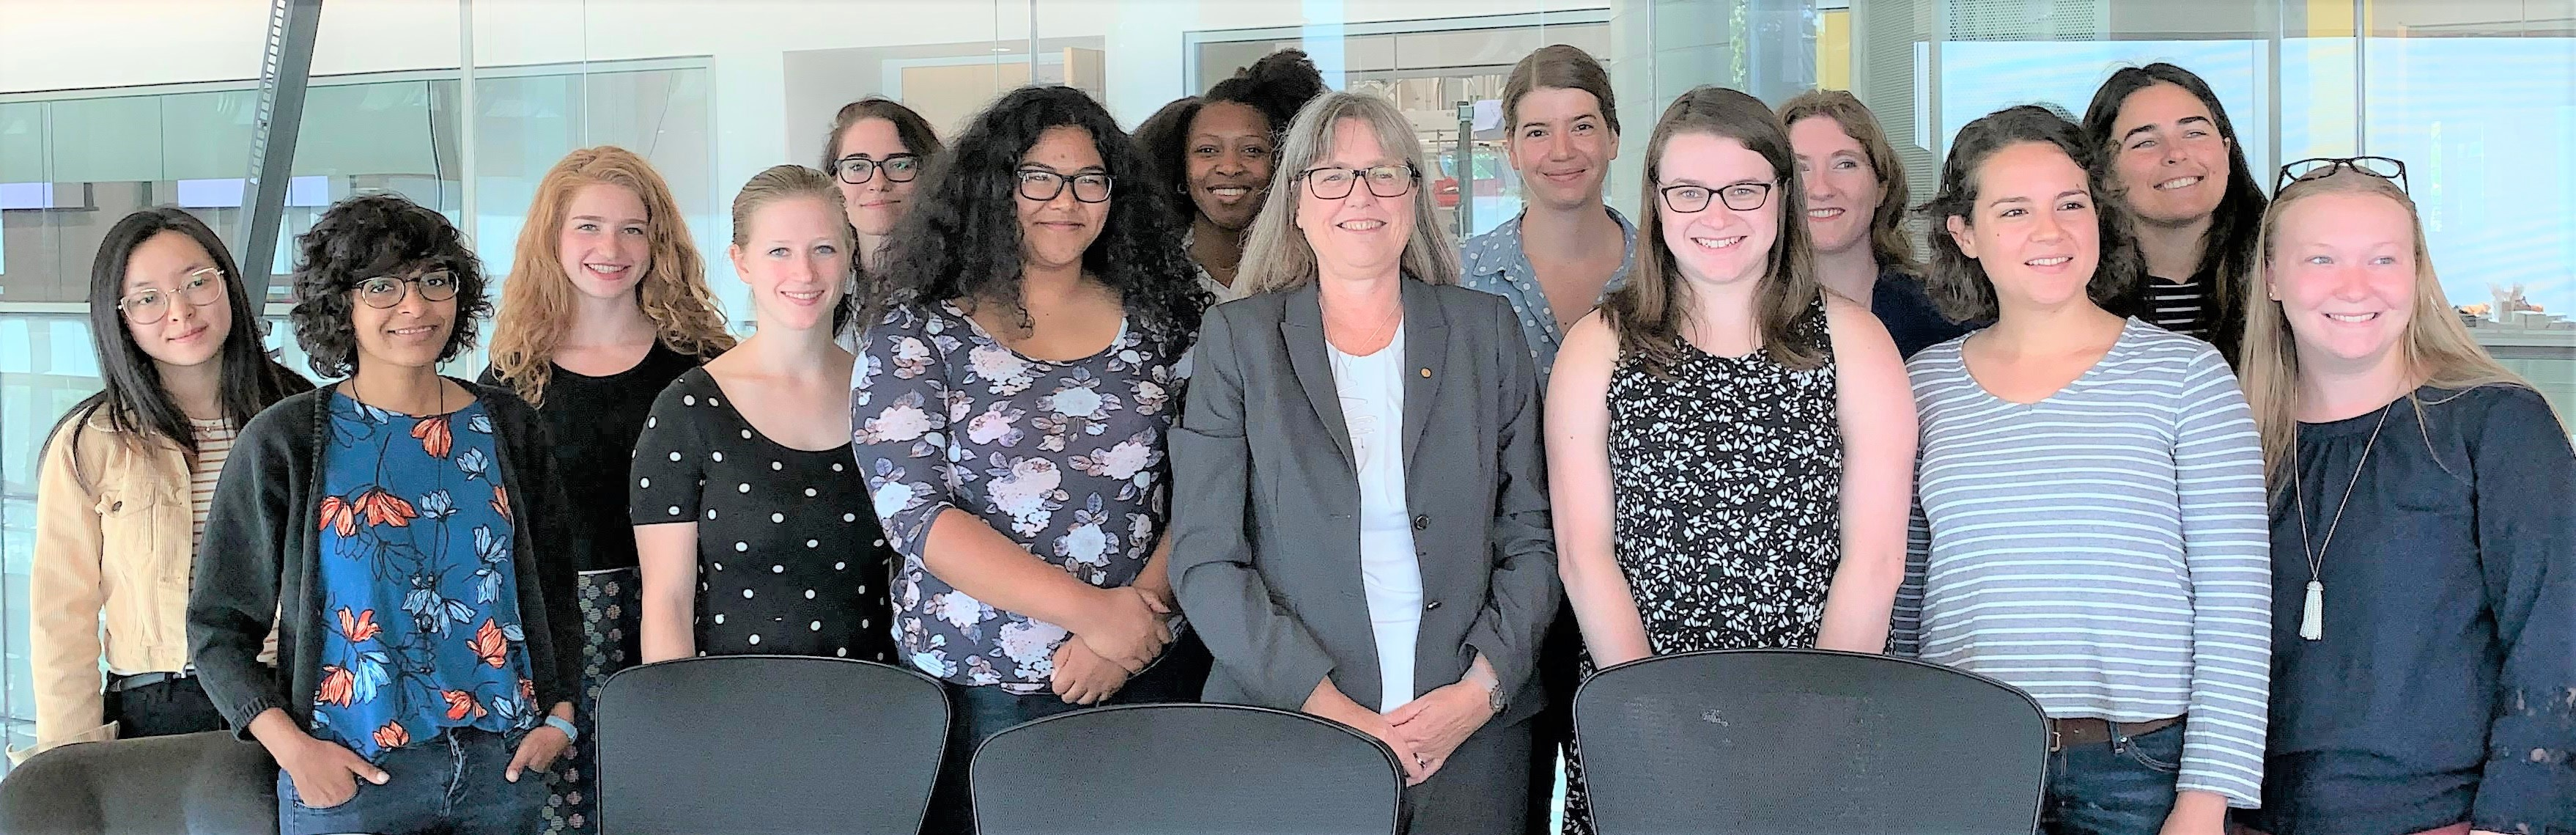 Donna Strickland visited UMD on 9/19/19.